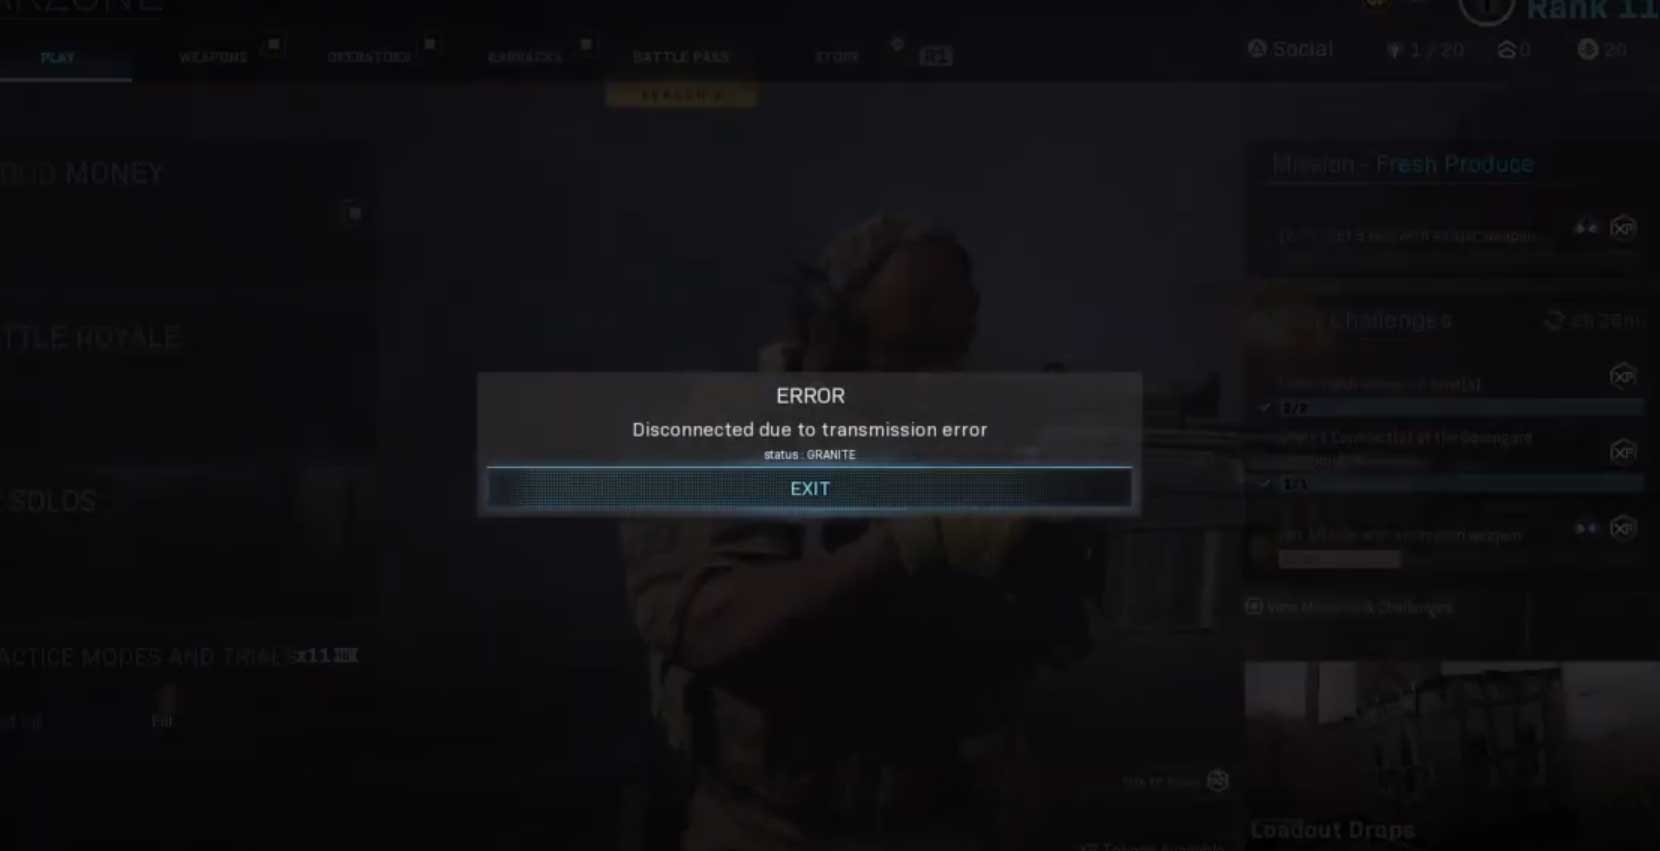 Disconnected due to Transmission Error